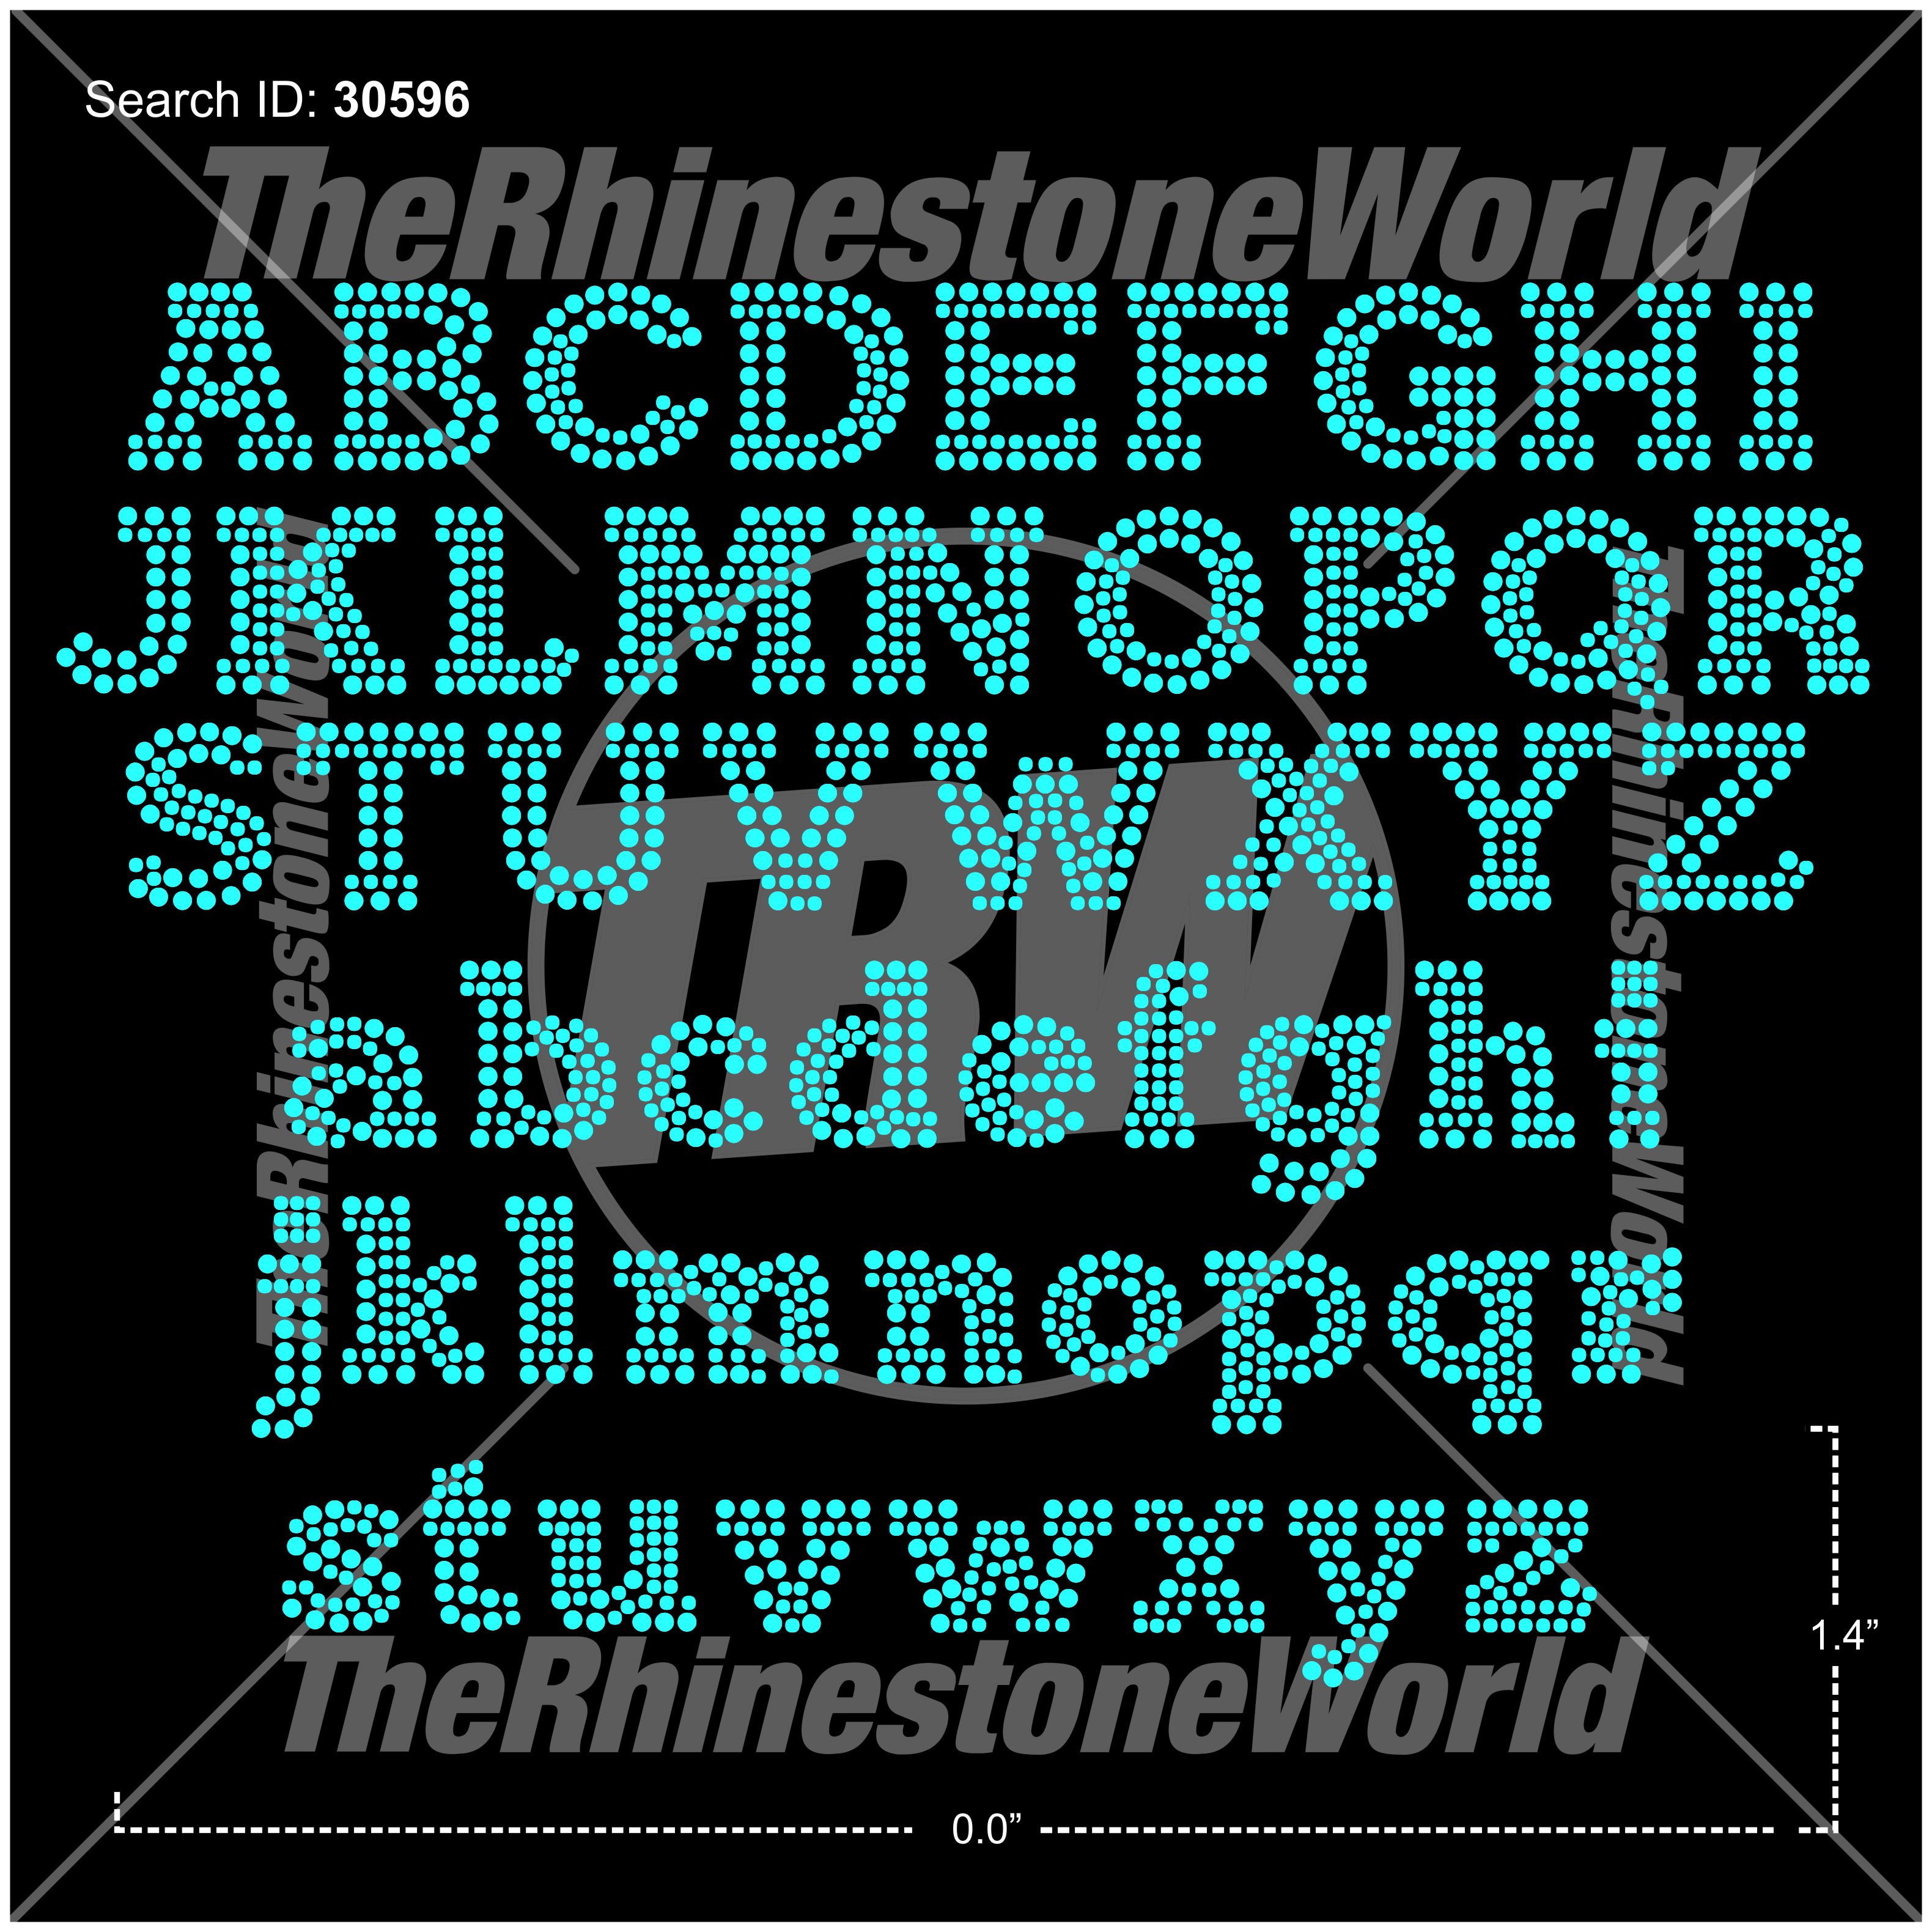 TRW 5989 Rhinestone TTF - Download